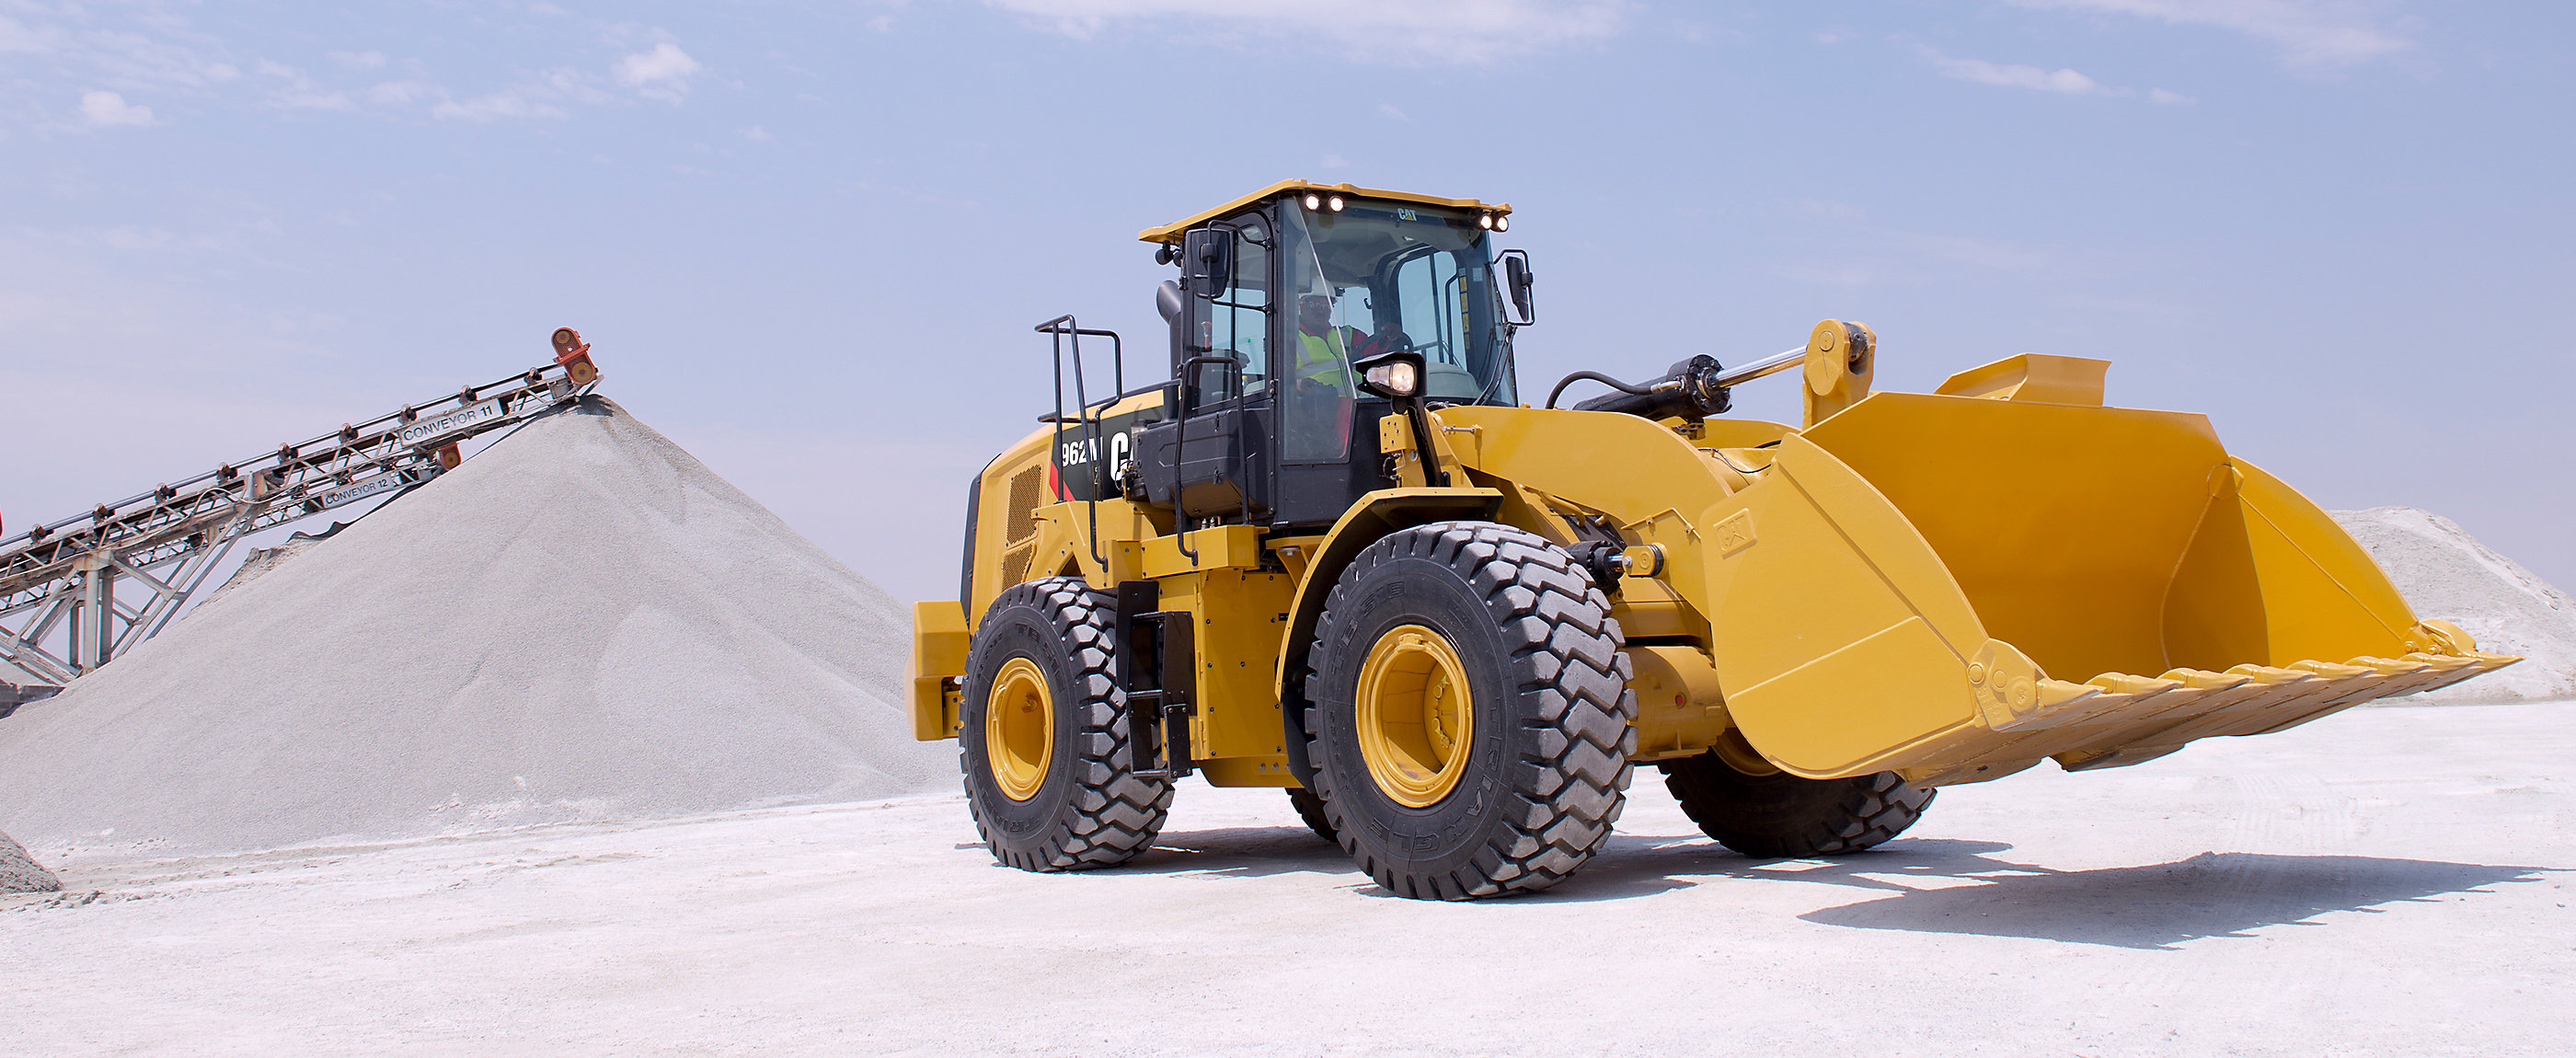 Cat® wheel loaders handle and load material safely, quickly and precisely.